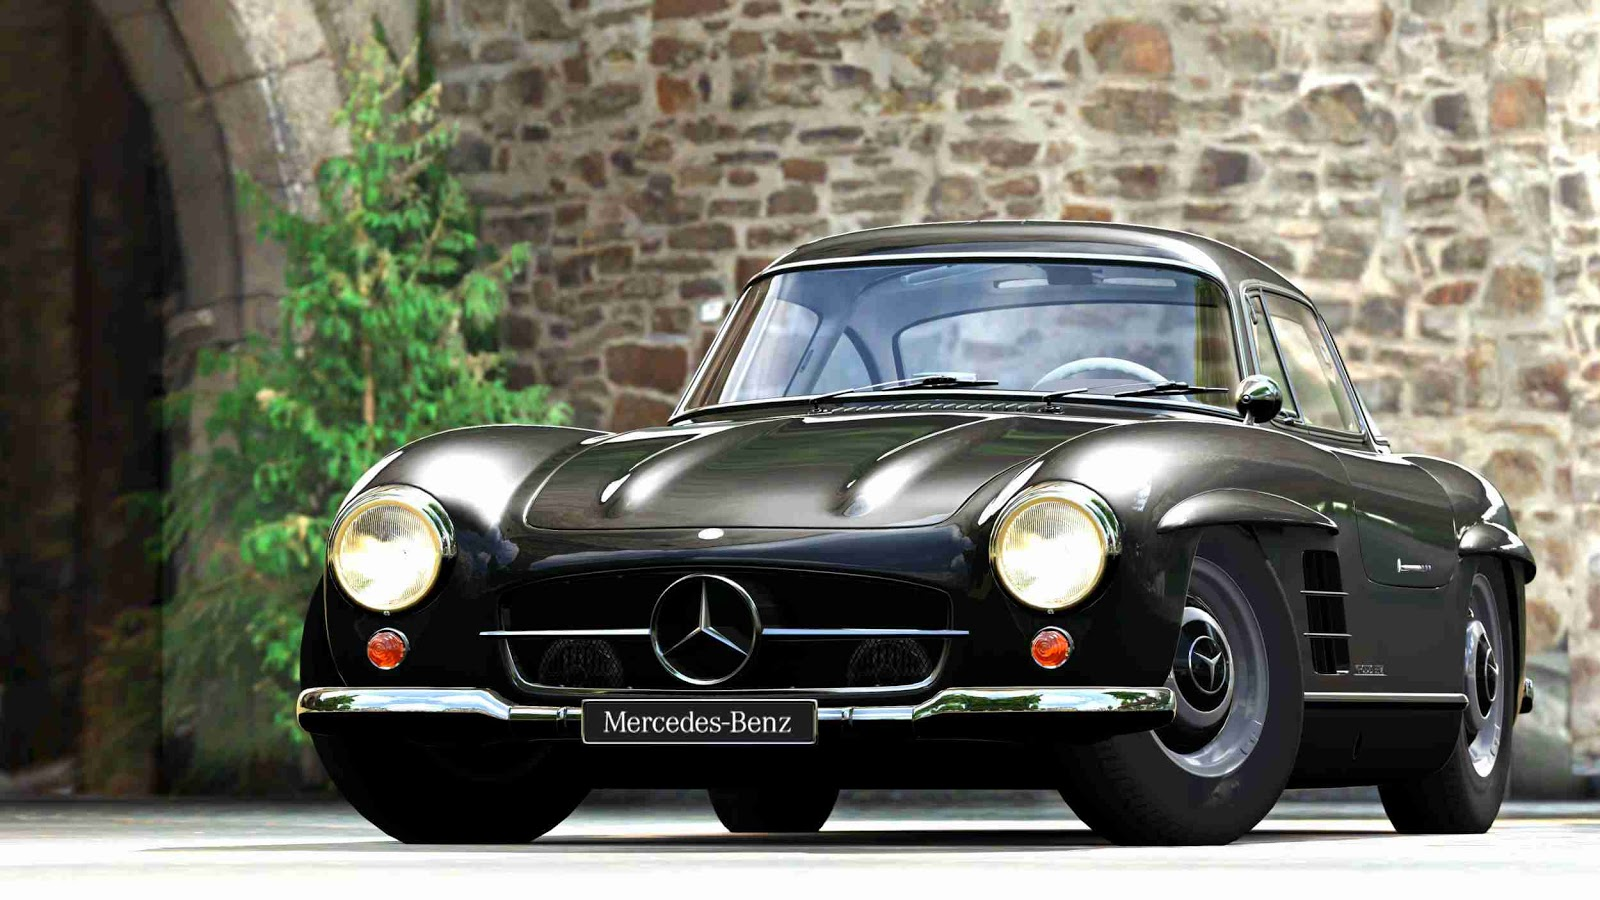 The old mercedes benz model 300 sl welcome to expert drivers